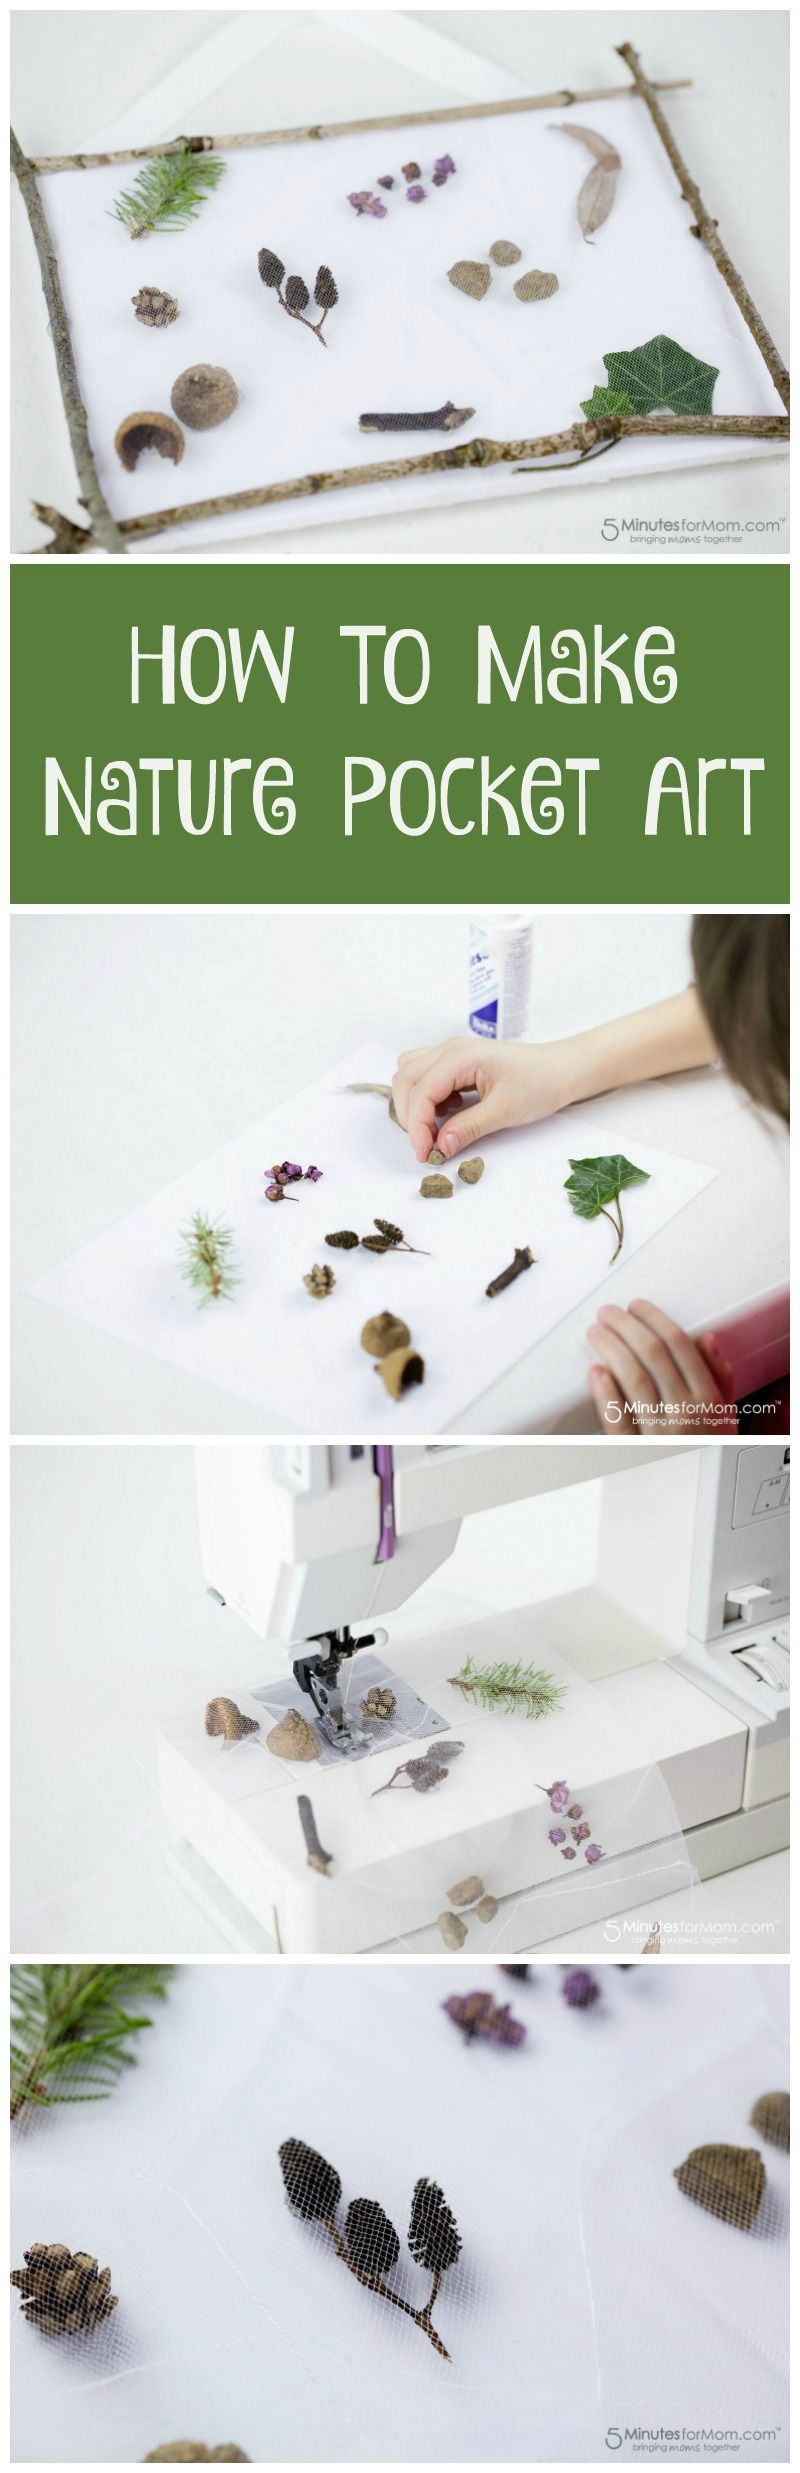 How to make nature pocket art nature craft for kids the fun kids activity is a lovely way to treasure memories from a nature walk with your children